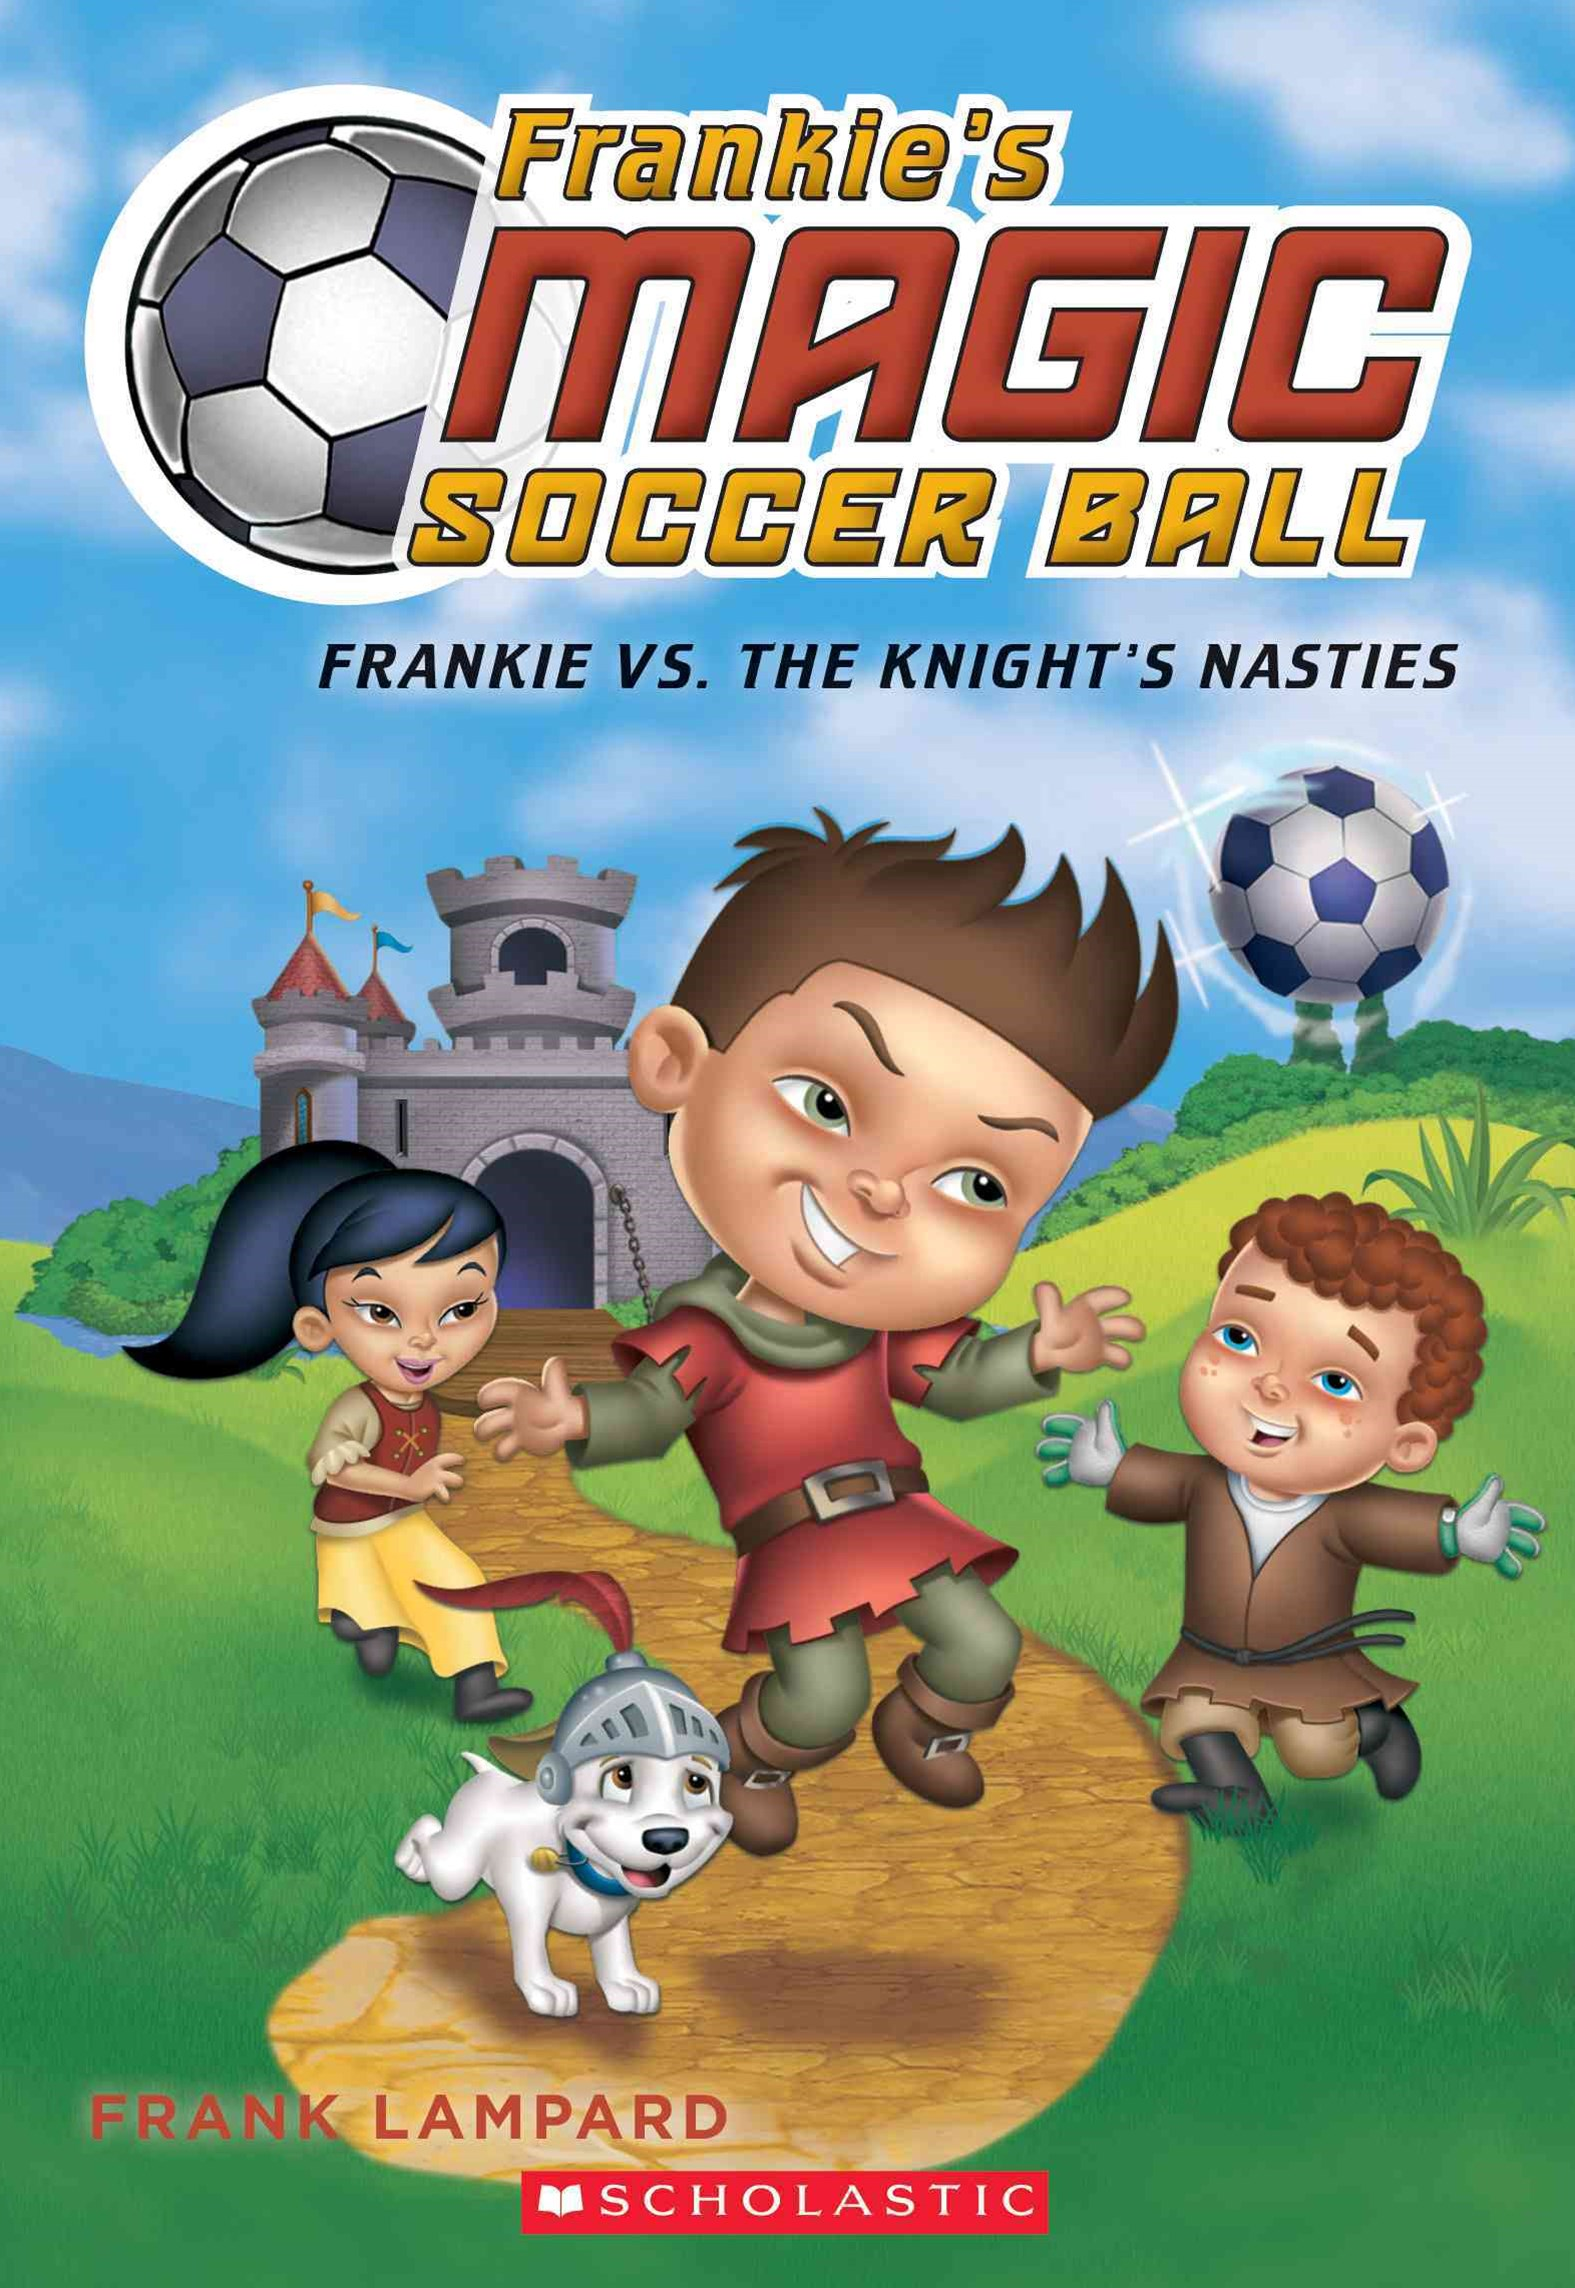 Frankie vs. the Knight's Nasties